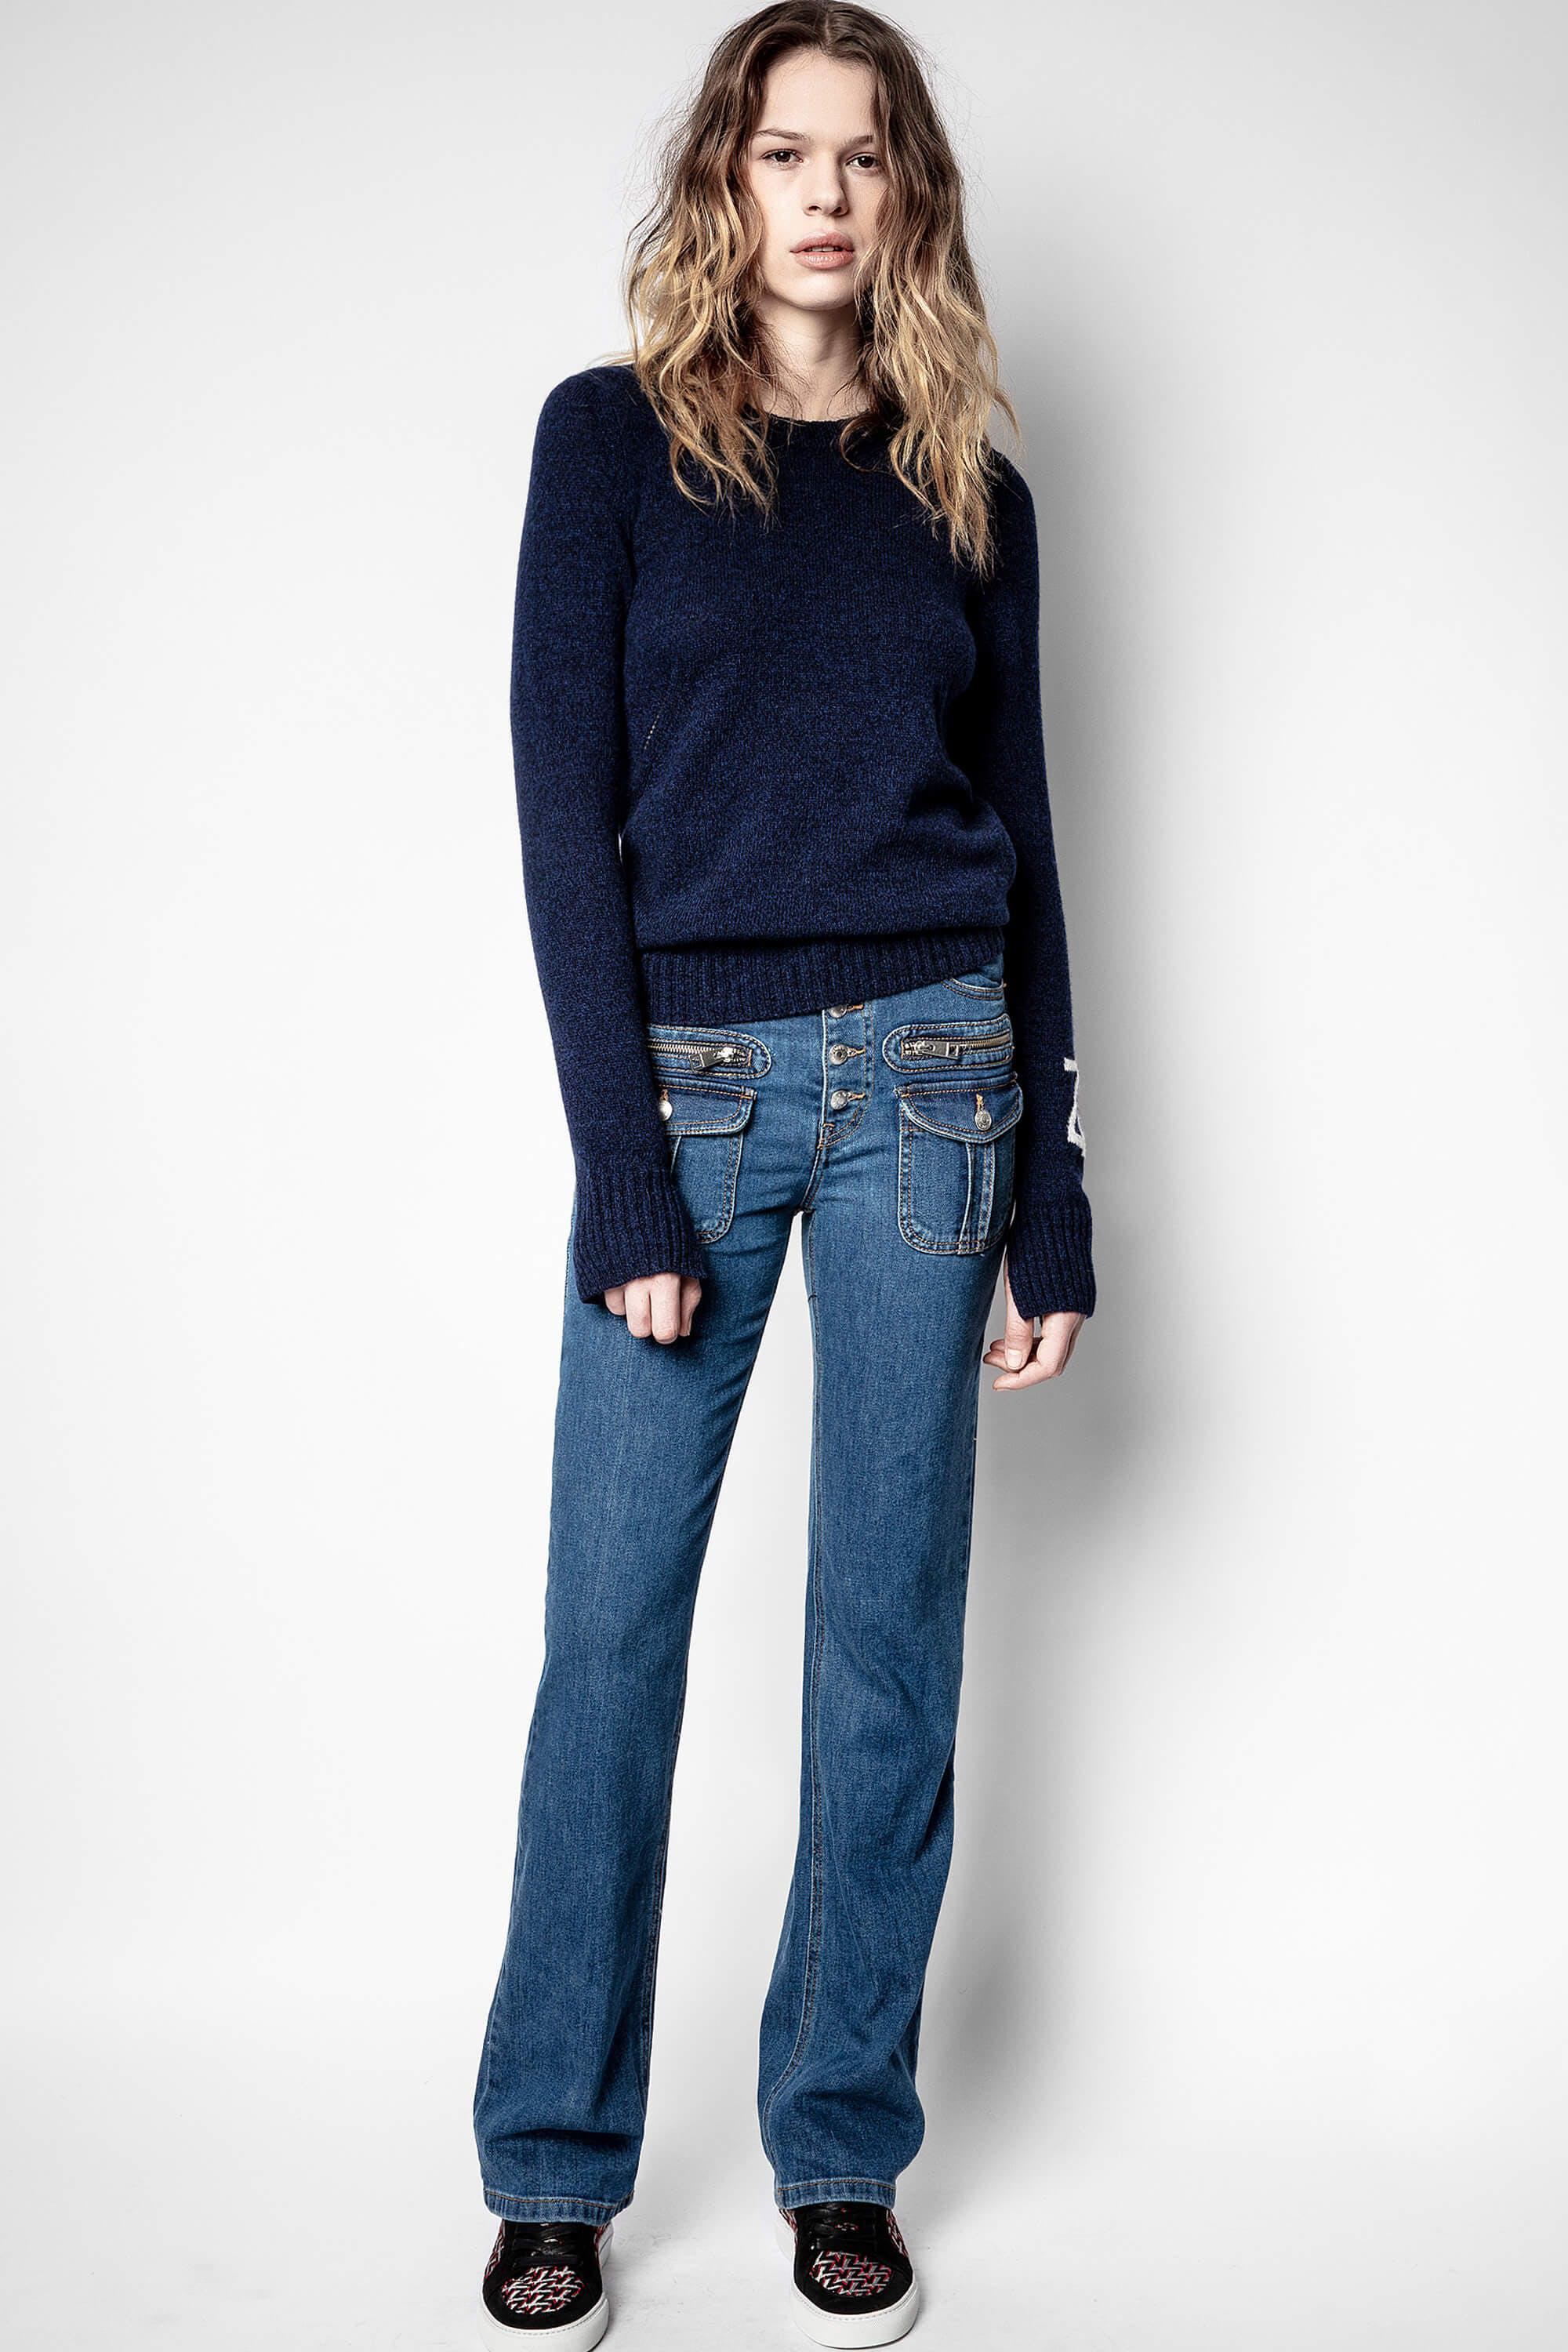 Source Recycled Cashmere Sweater 0